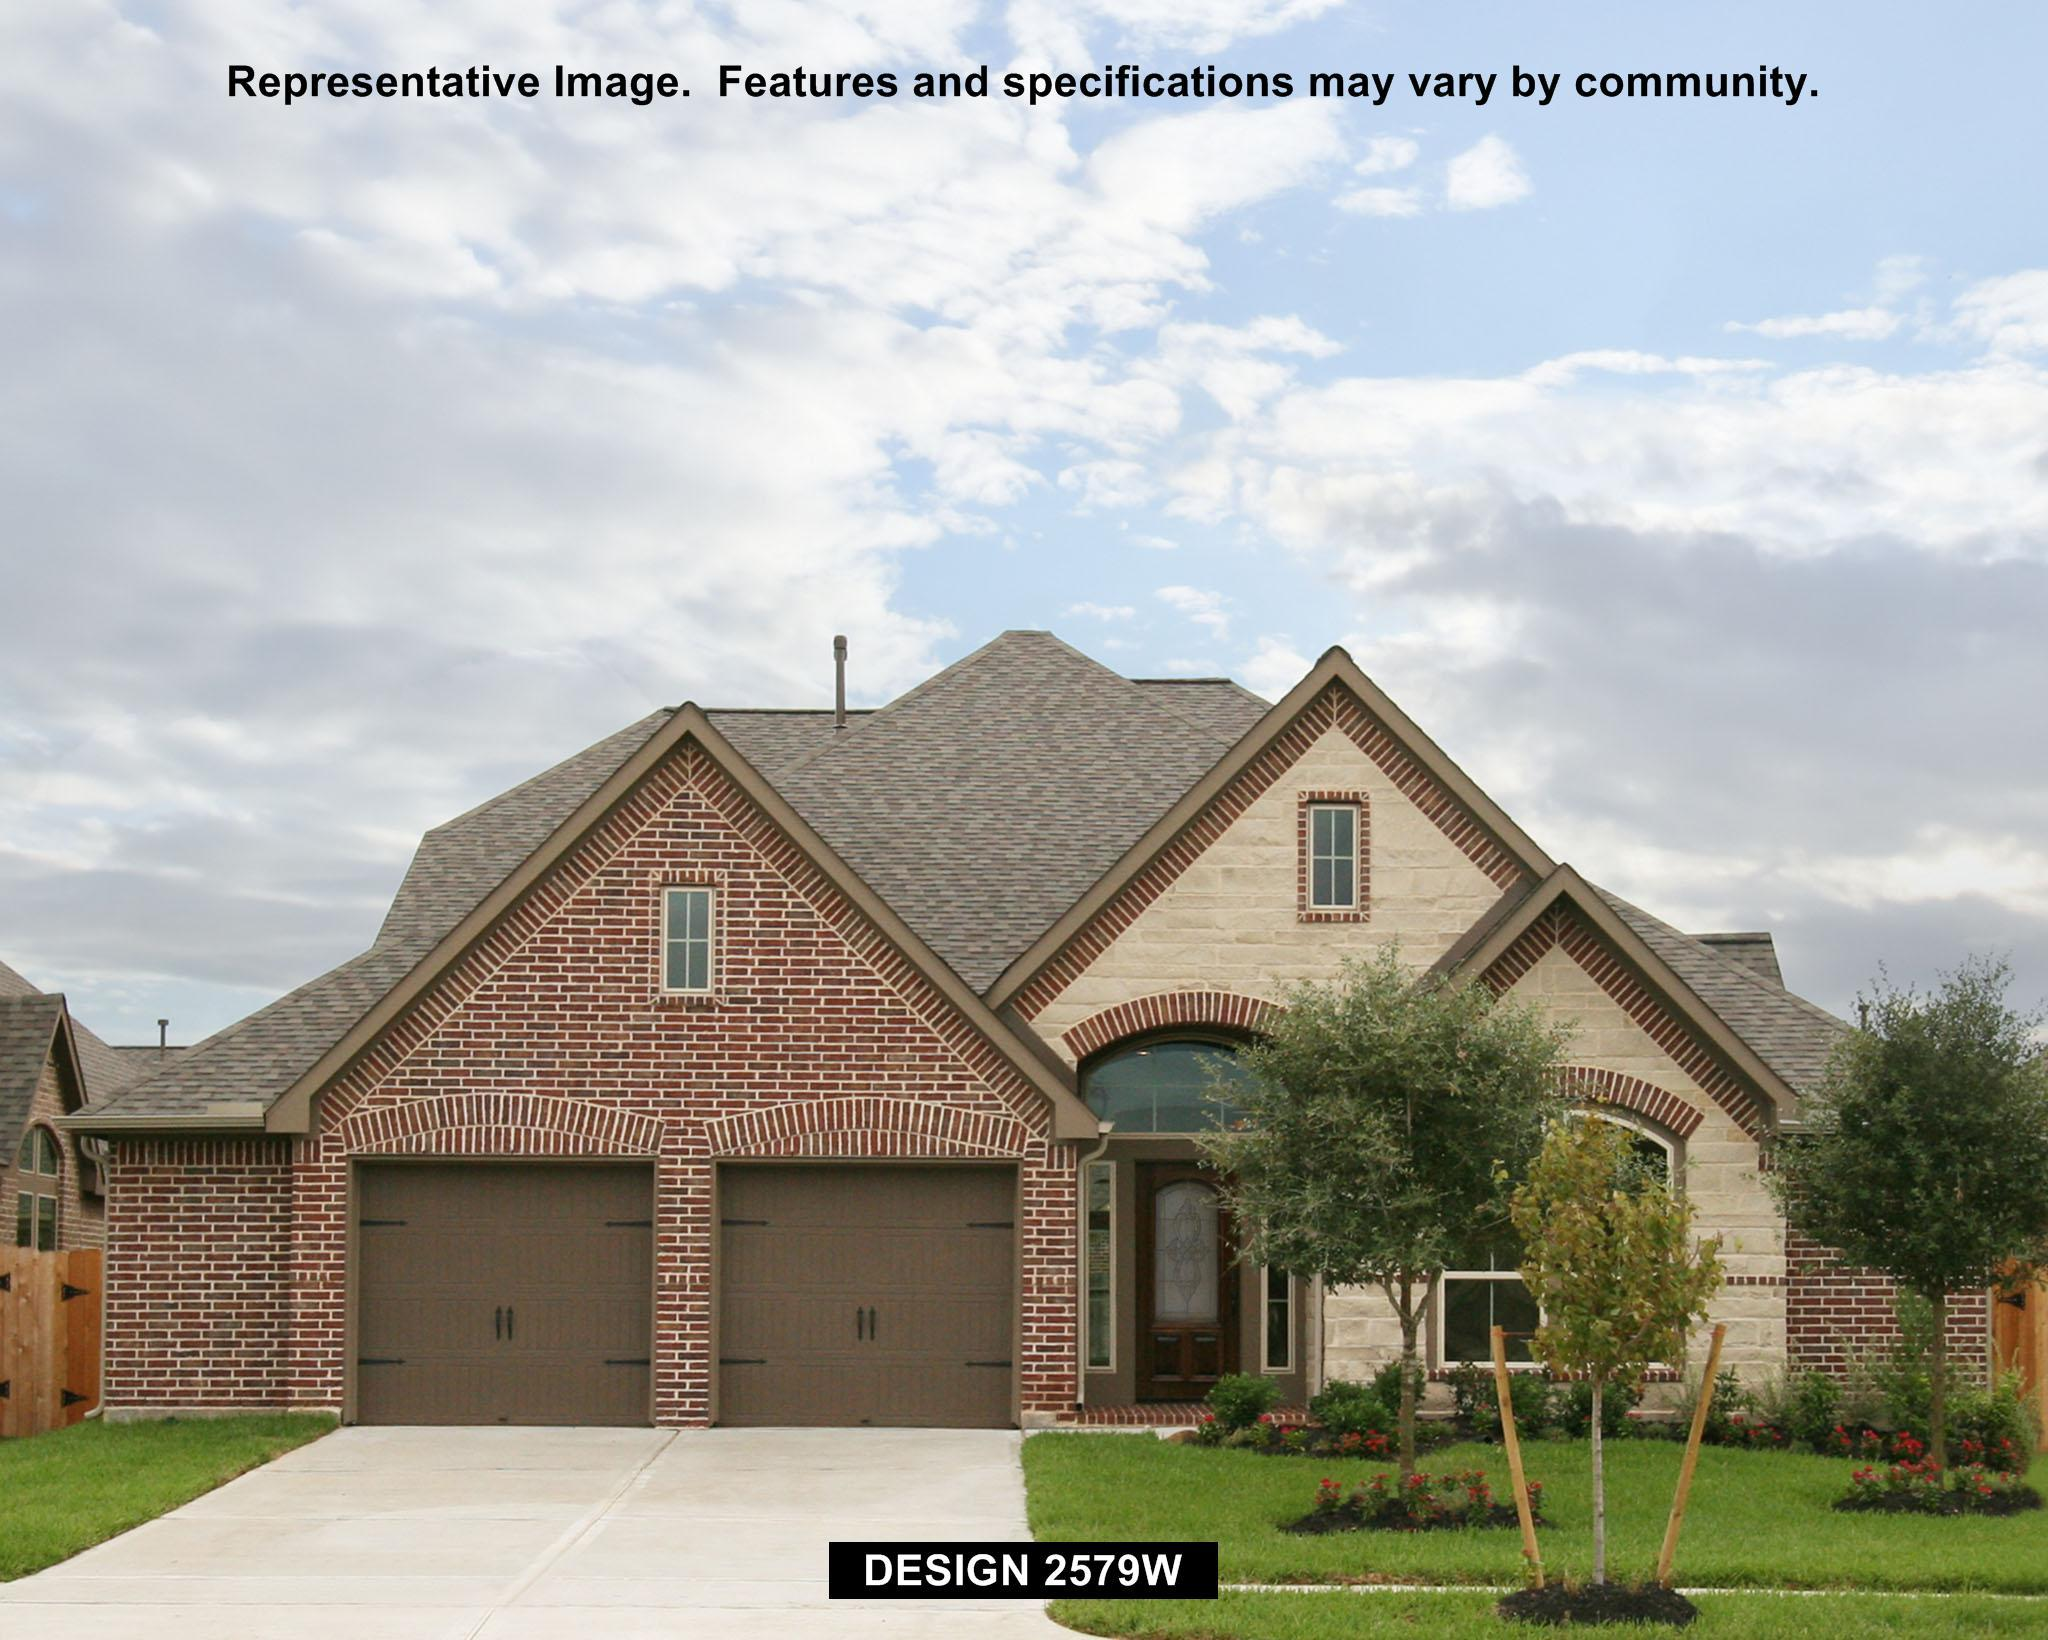 2579W - Aliana: Aliana 55': Richmond, TX - Perry Homes